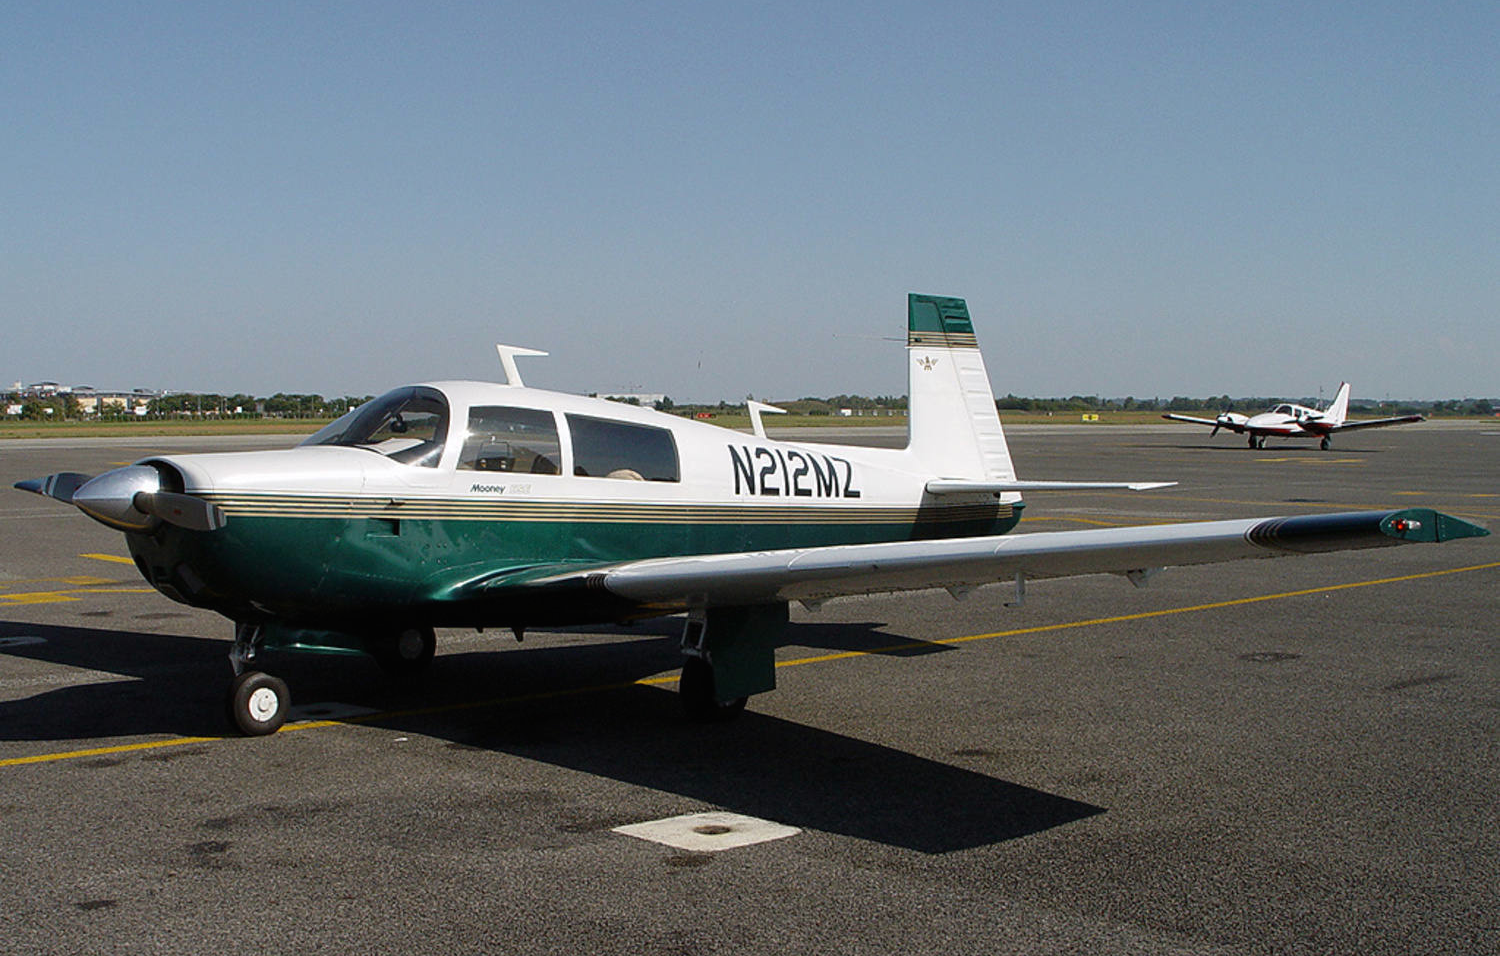 1976 Mooney M20f Exec 21 For Sale N212mz Planeboard